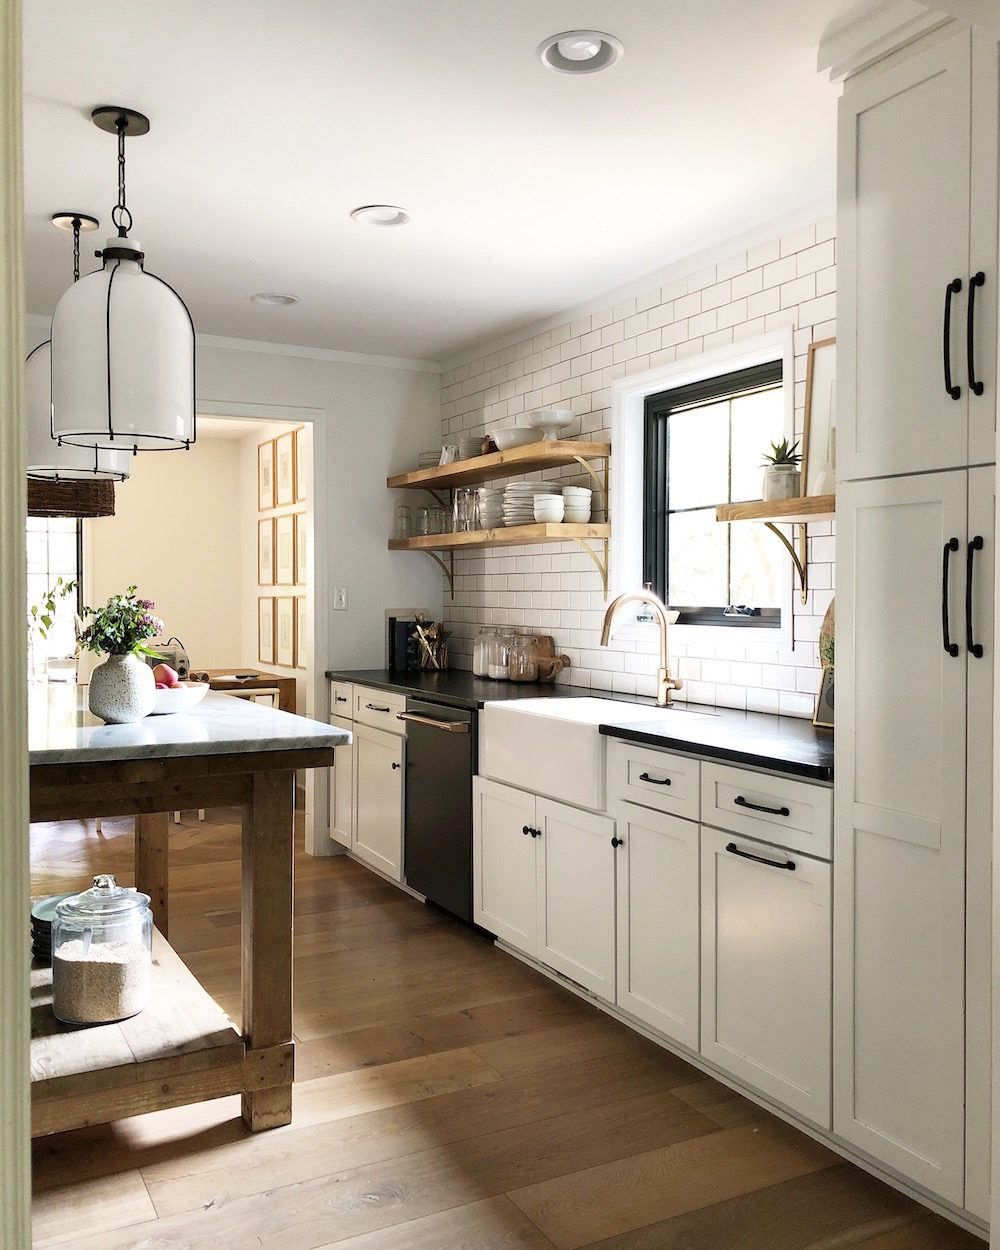 Dated Kitchen And No Money Can It Be Saved Kitchen Design Home Inexpensive Flooring